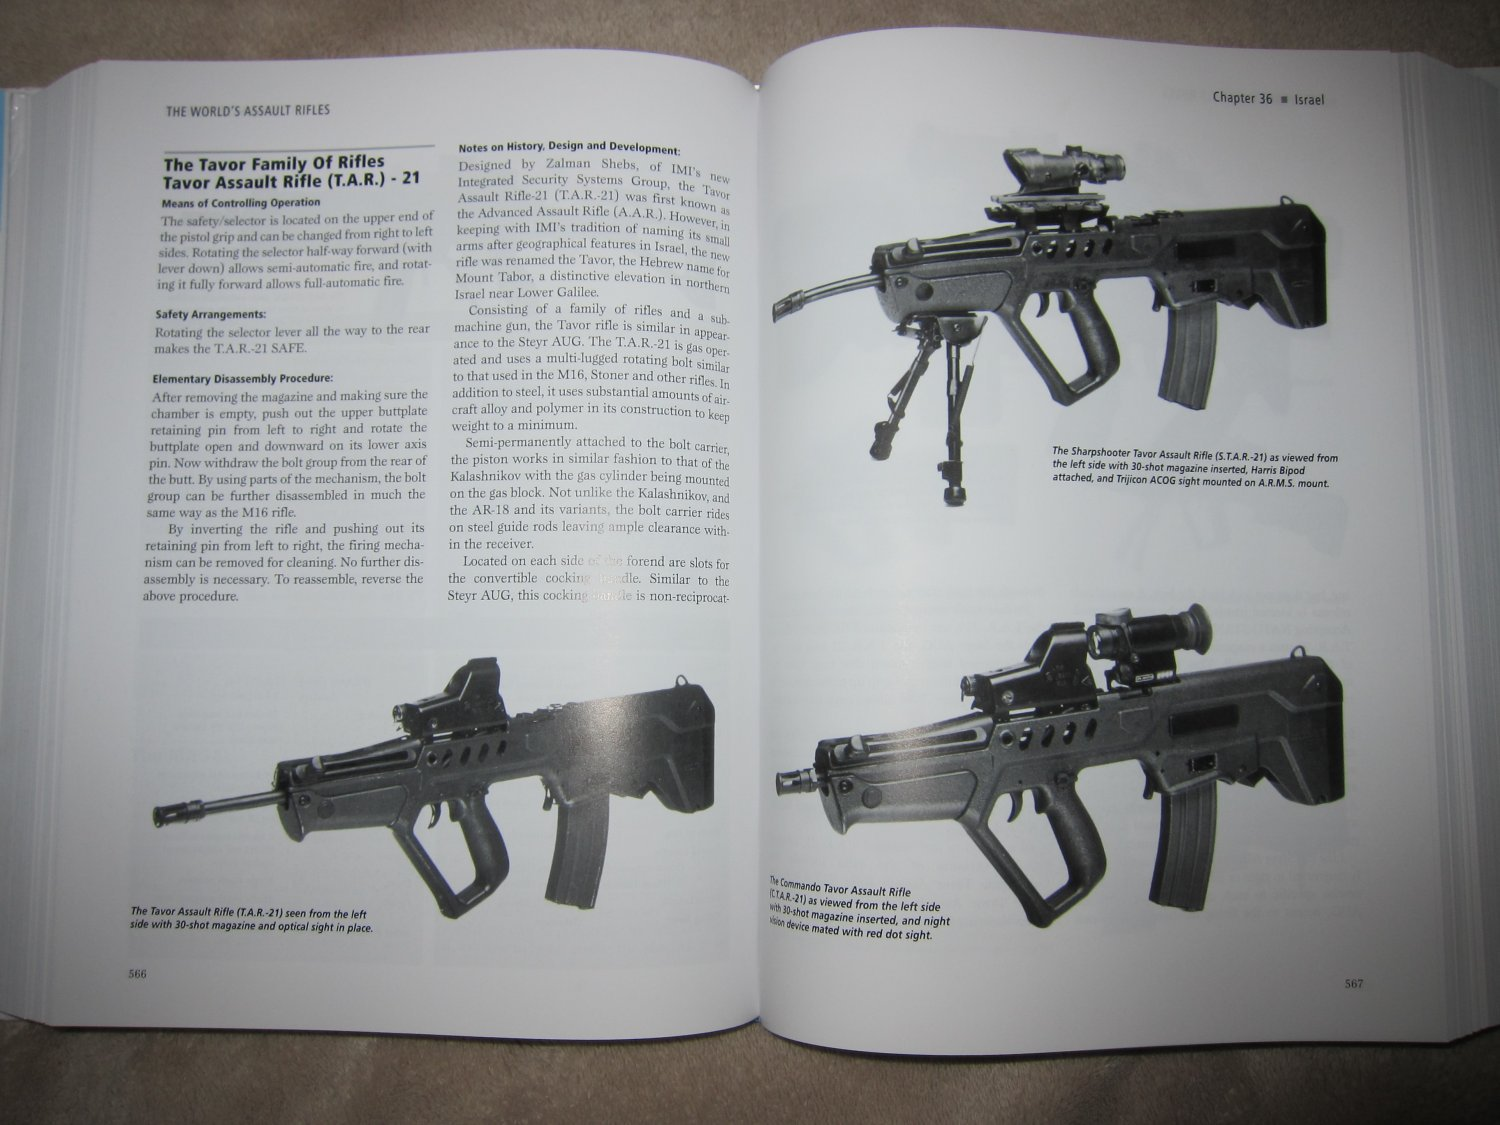 Assault Rifles of the World Book Gary Paul Johnston 6 <!  :en  >The Worlds Assault Rifles: Best and Most Complete Book on Military Infantry Assault Rifles (and Battle Rifles) Ever Written?  DefenseReview (DR) Highly Recommends It!<!  :  >